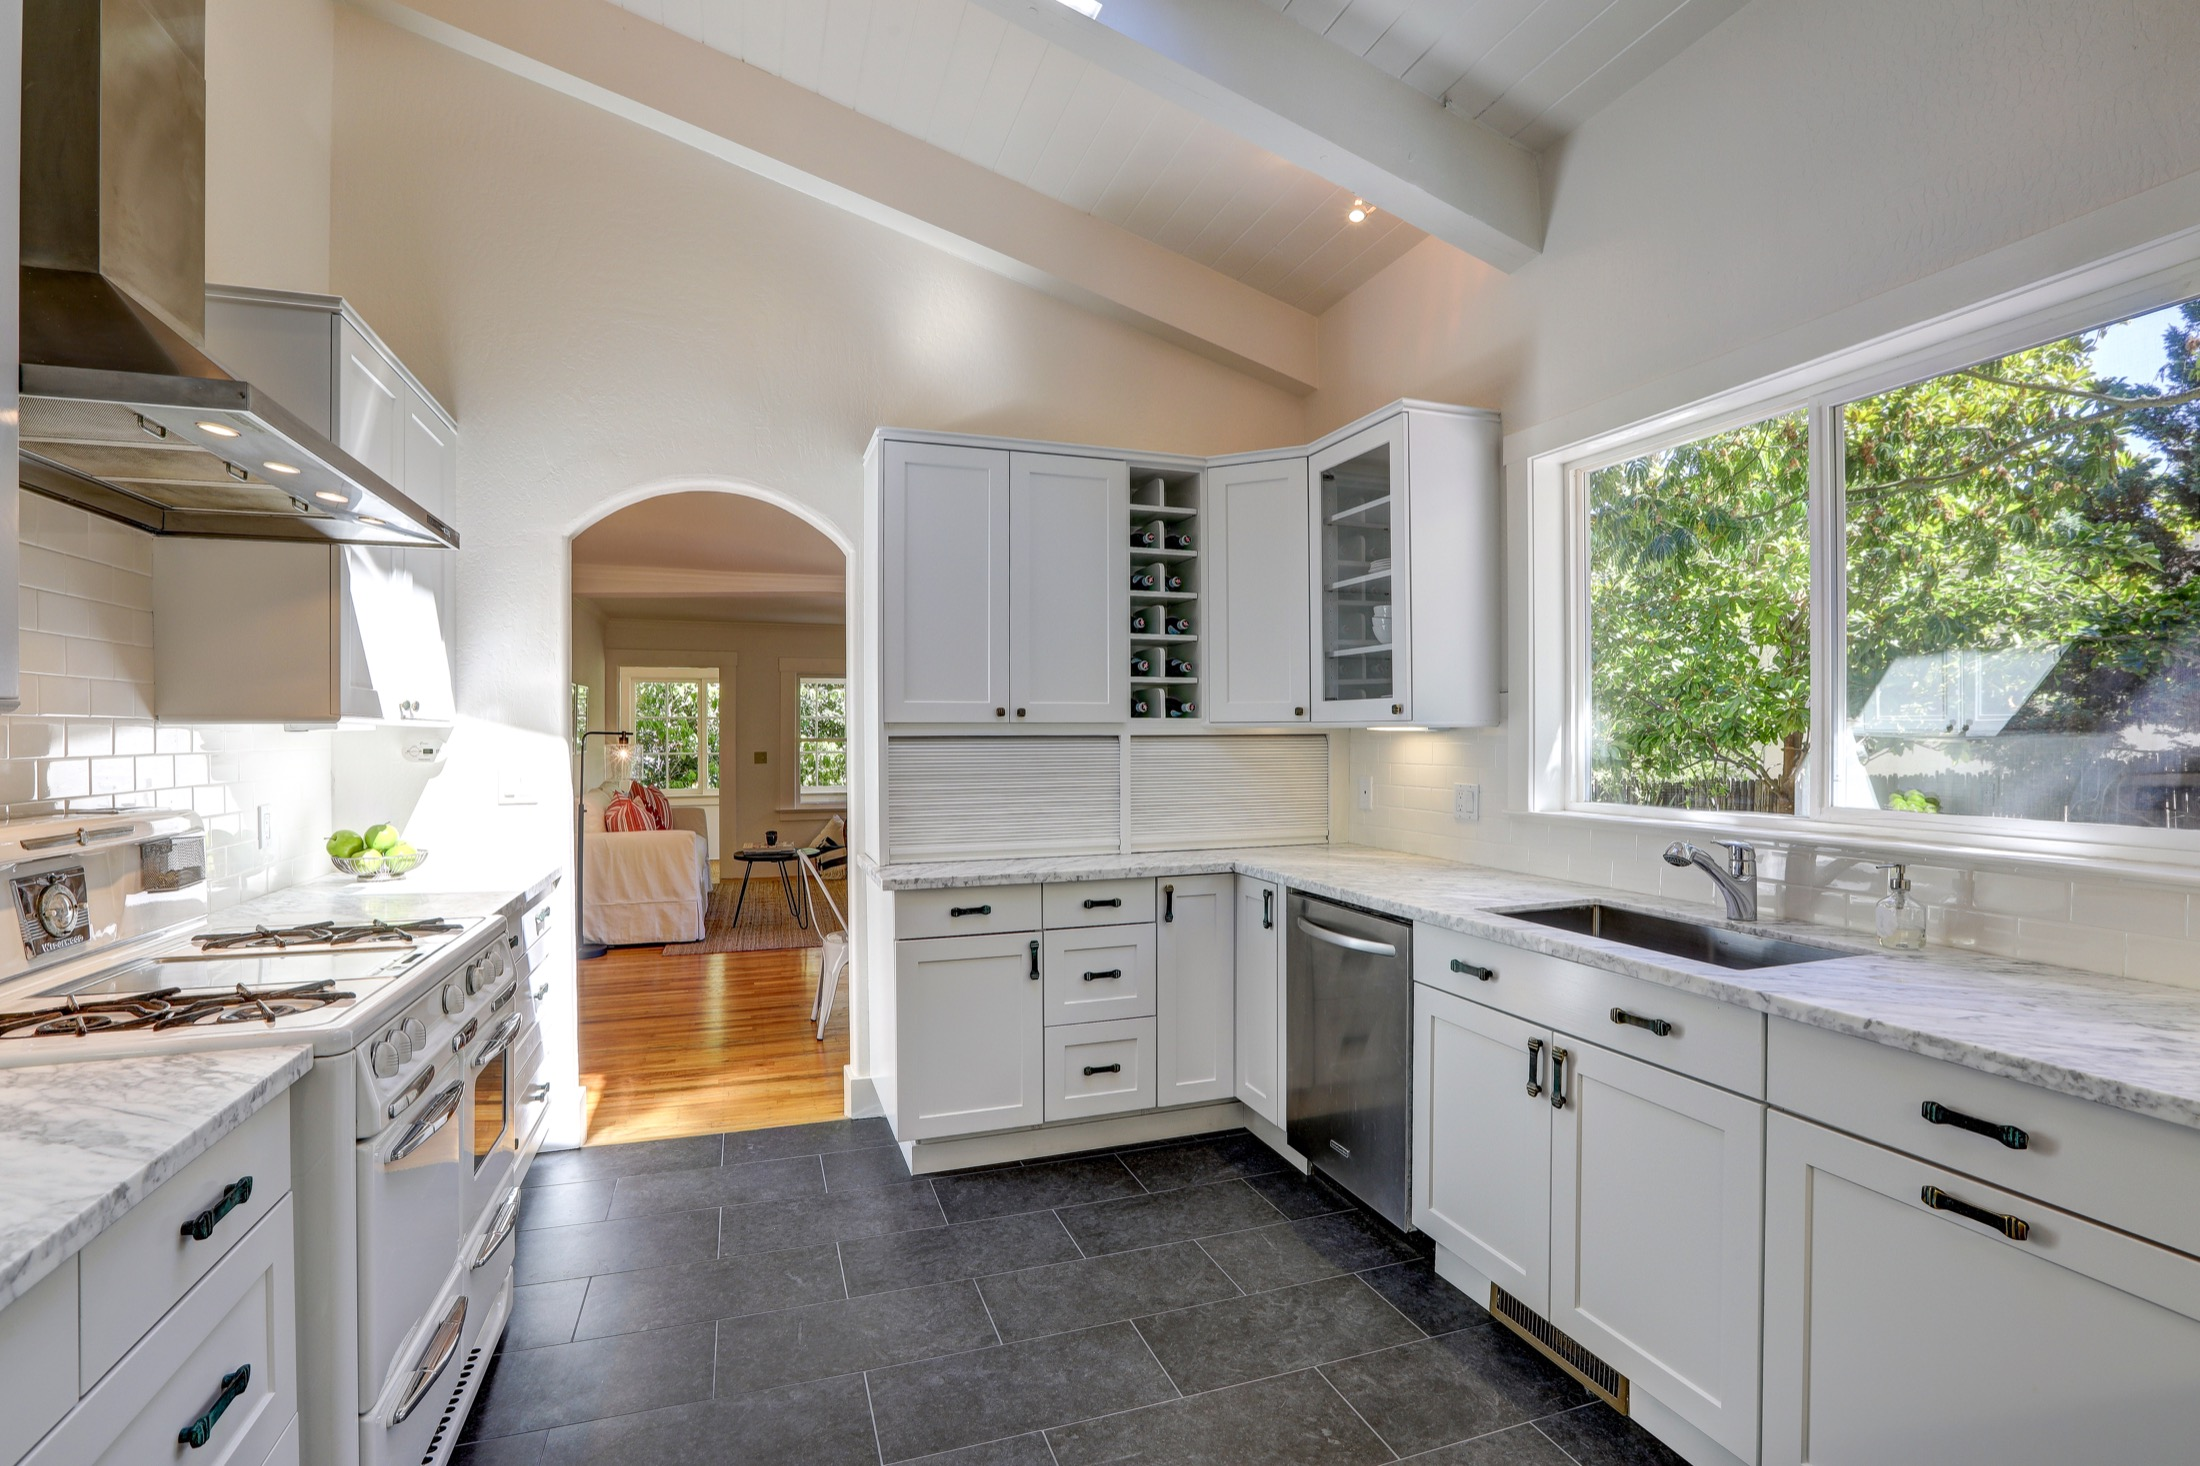 renovated kitchen new kitchens equal healthier homeowners own marin county s 1 real estate team with compass